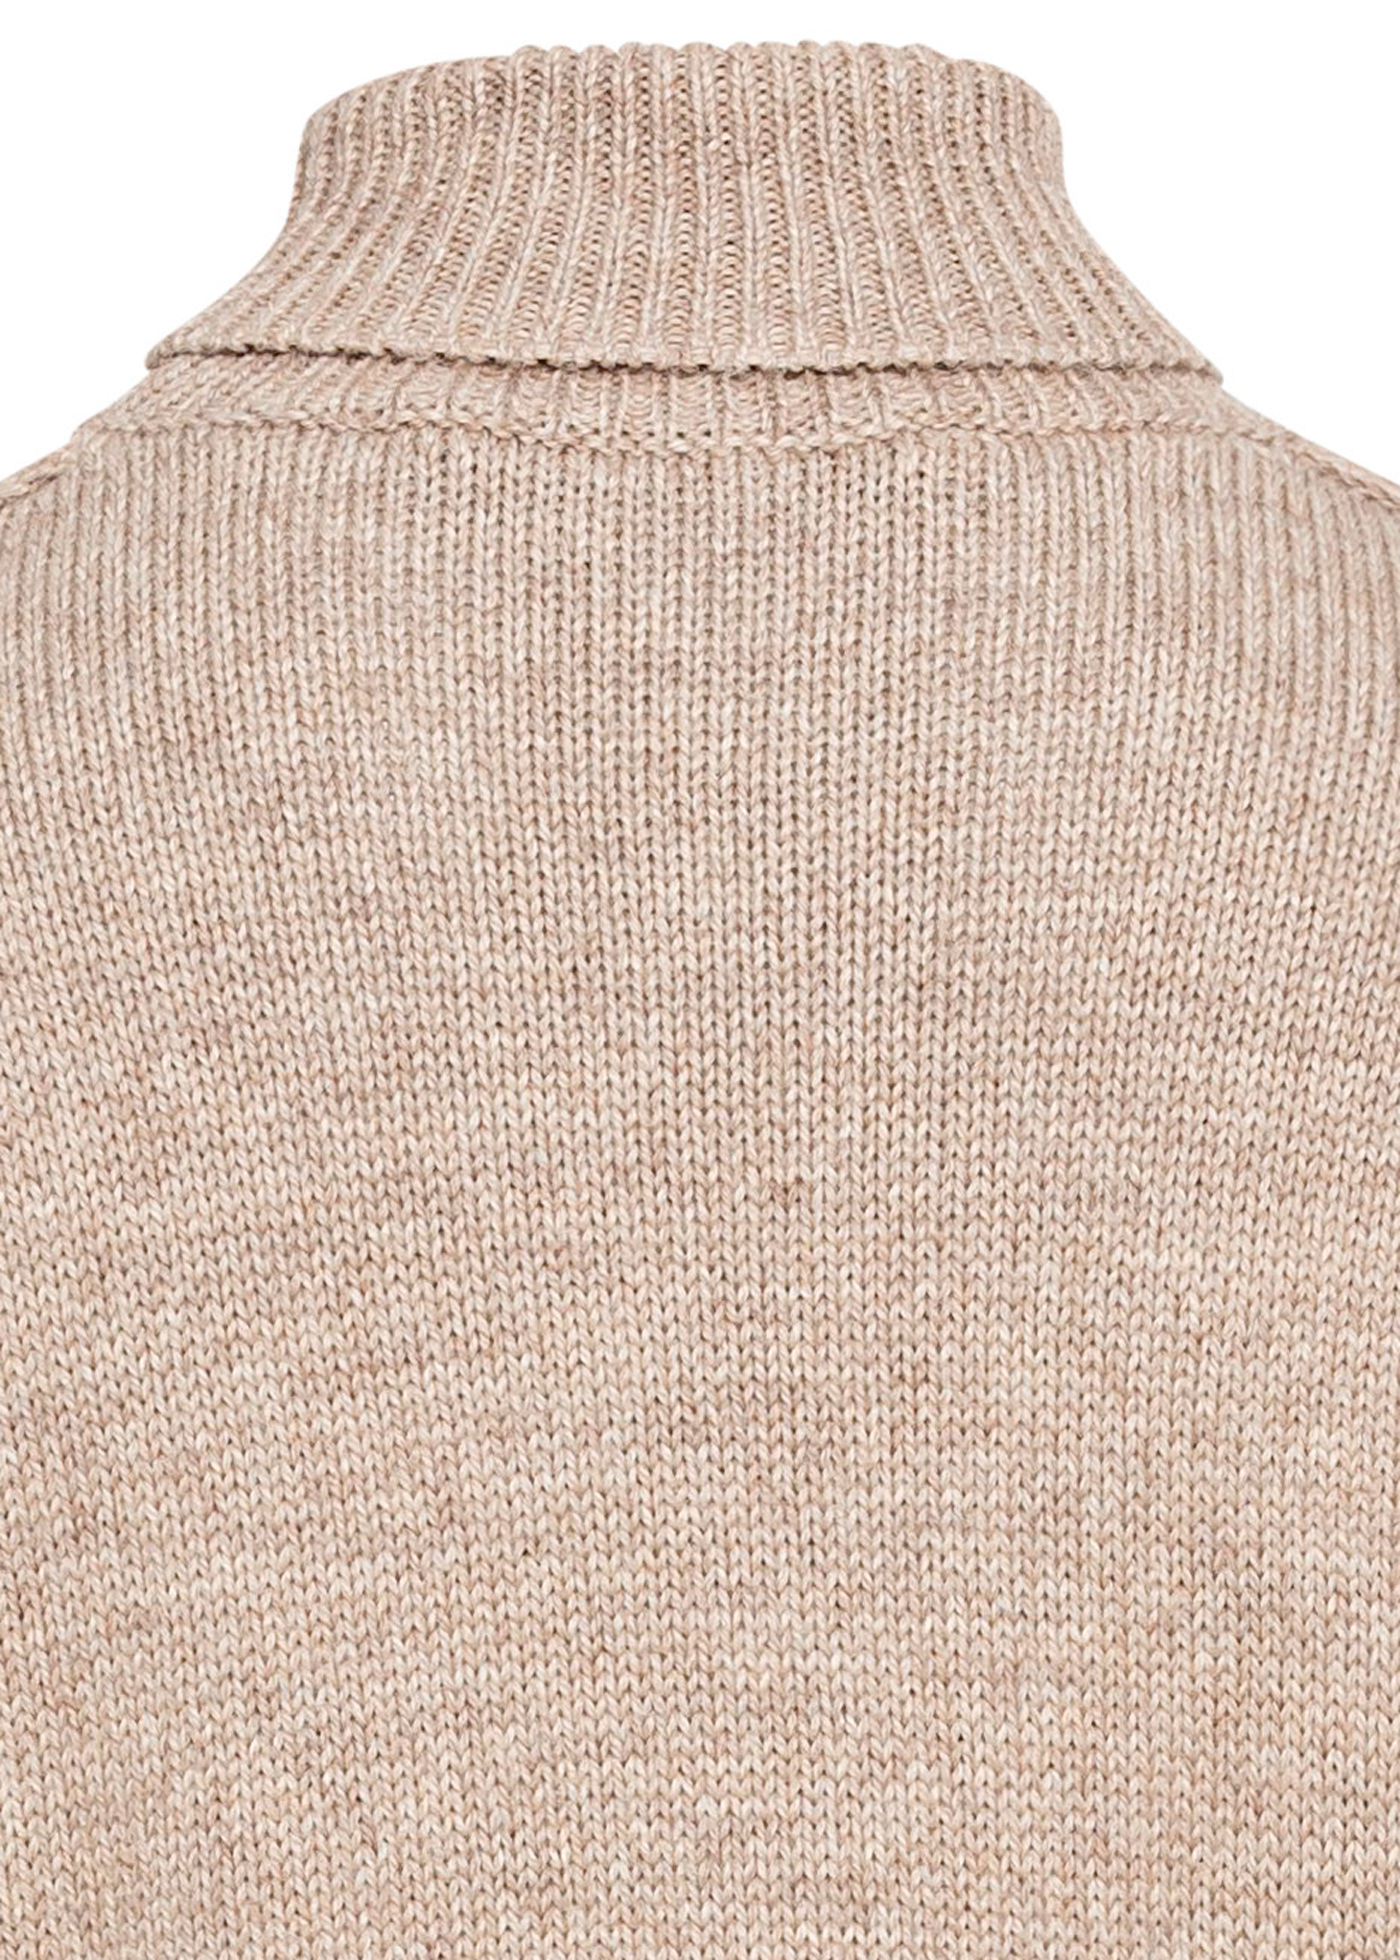 PXP TURTLE NECK image number 3